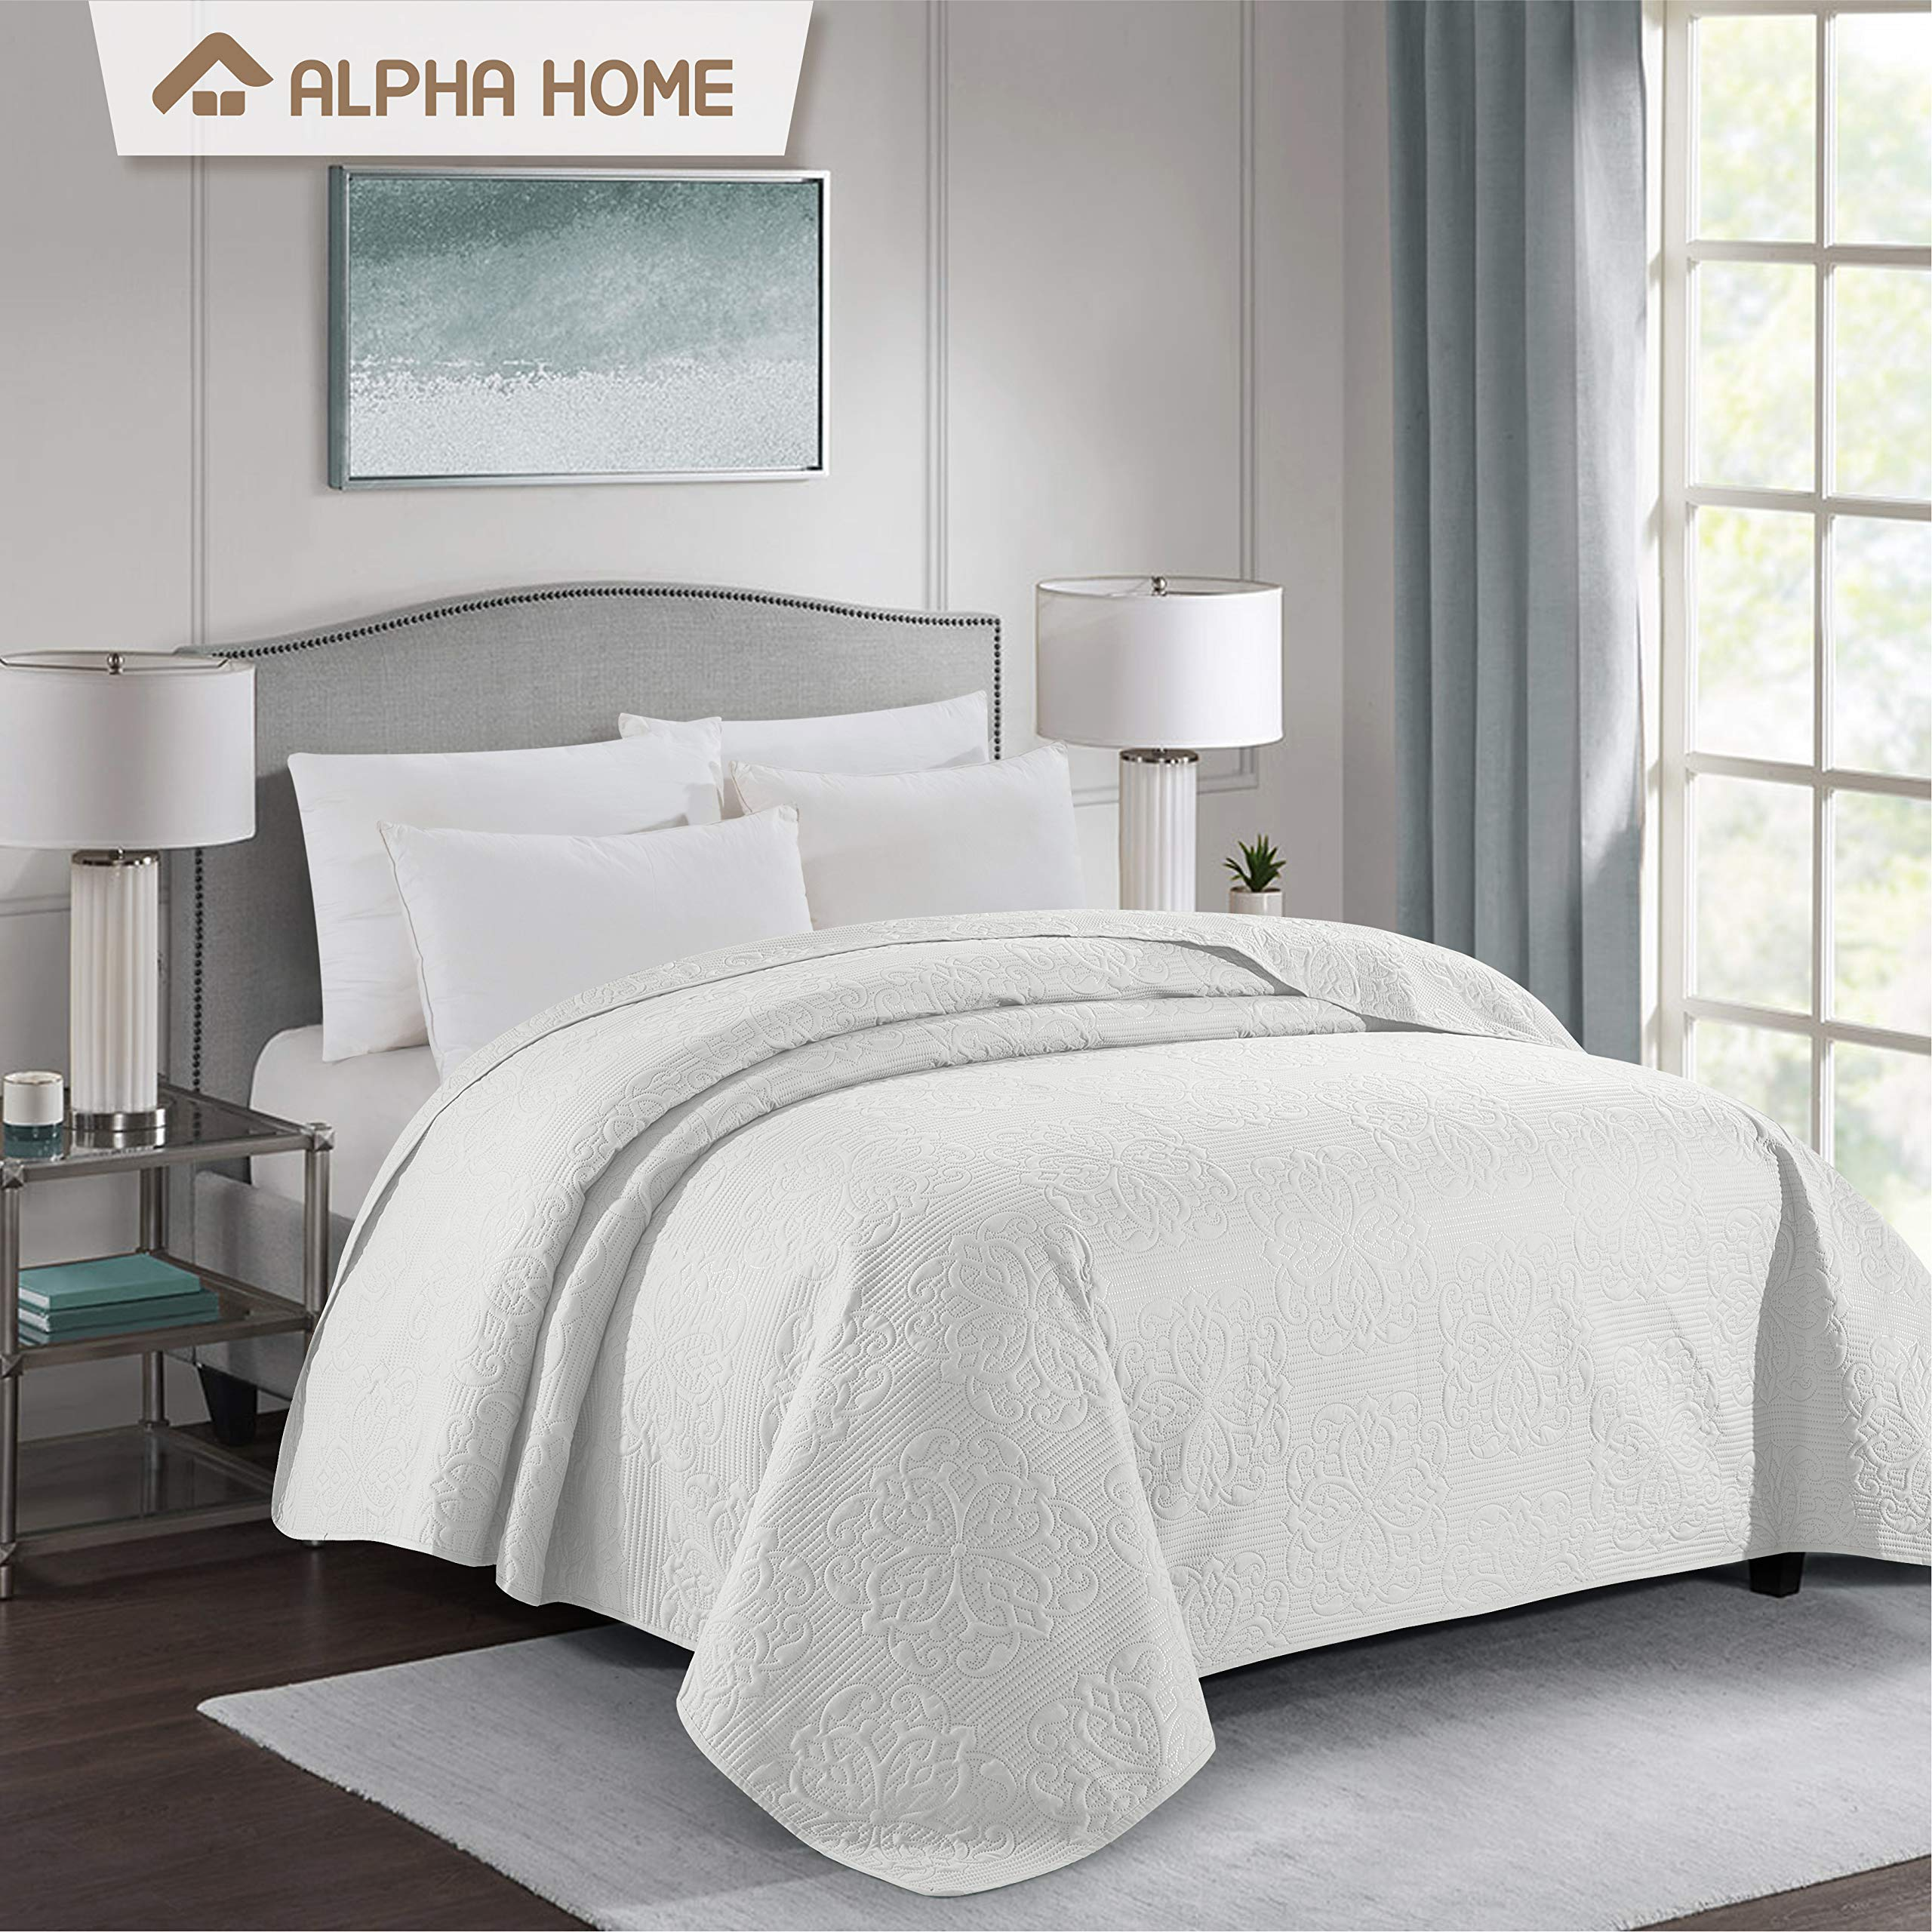 ALPHA HOME Bed Quilt Bedspread and Coverlet, Queen Size, Ivory